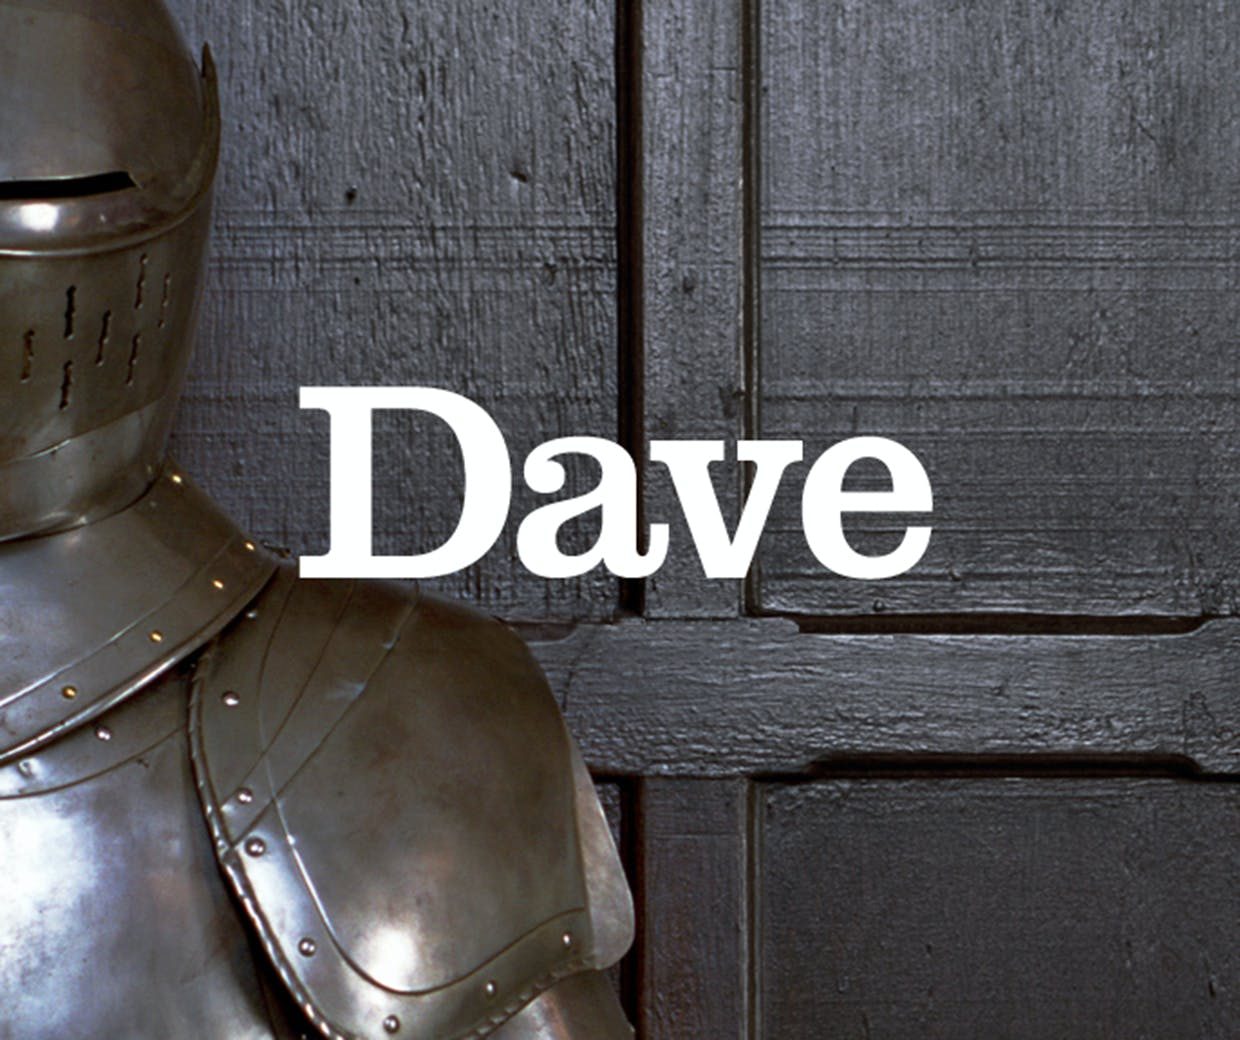 How UKTV's Dave went from 'ridiculous idea' to award-winning